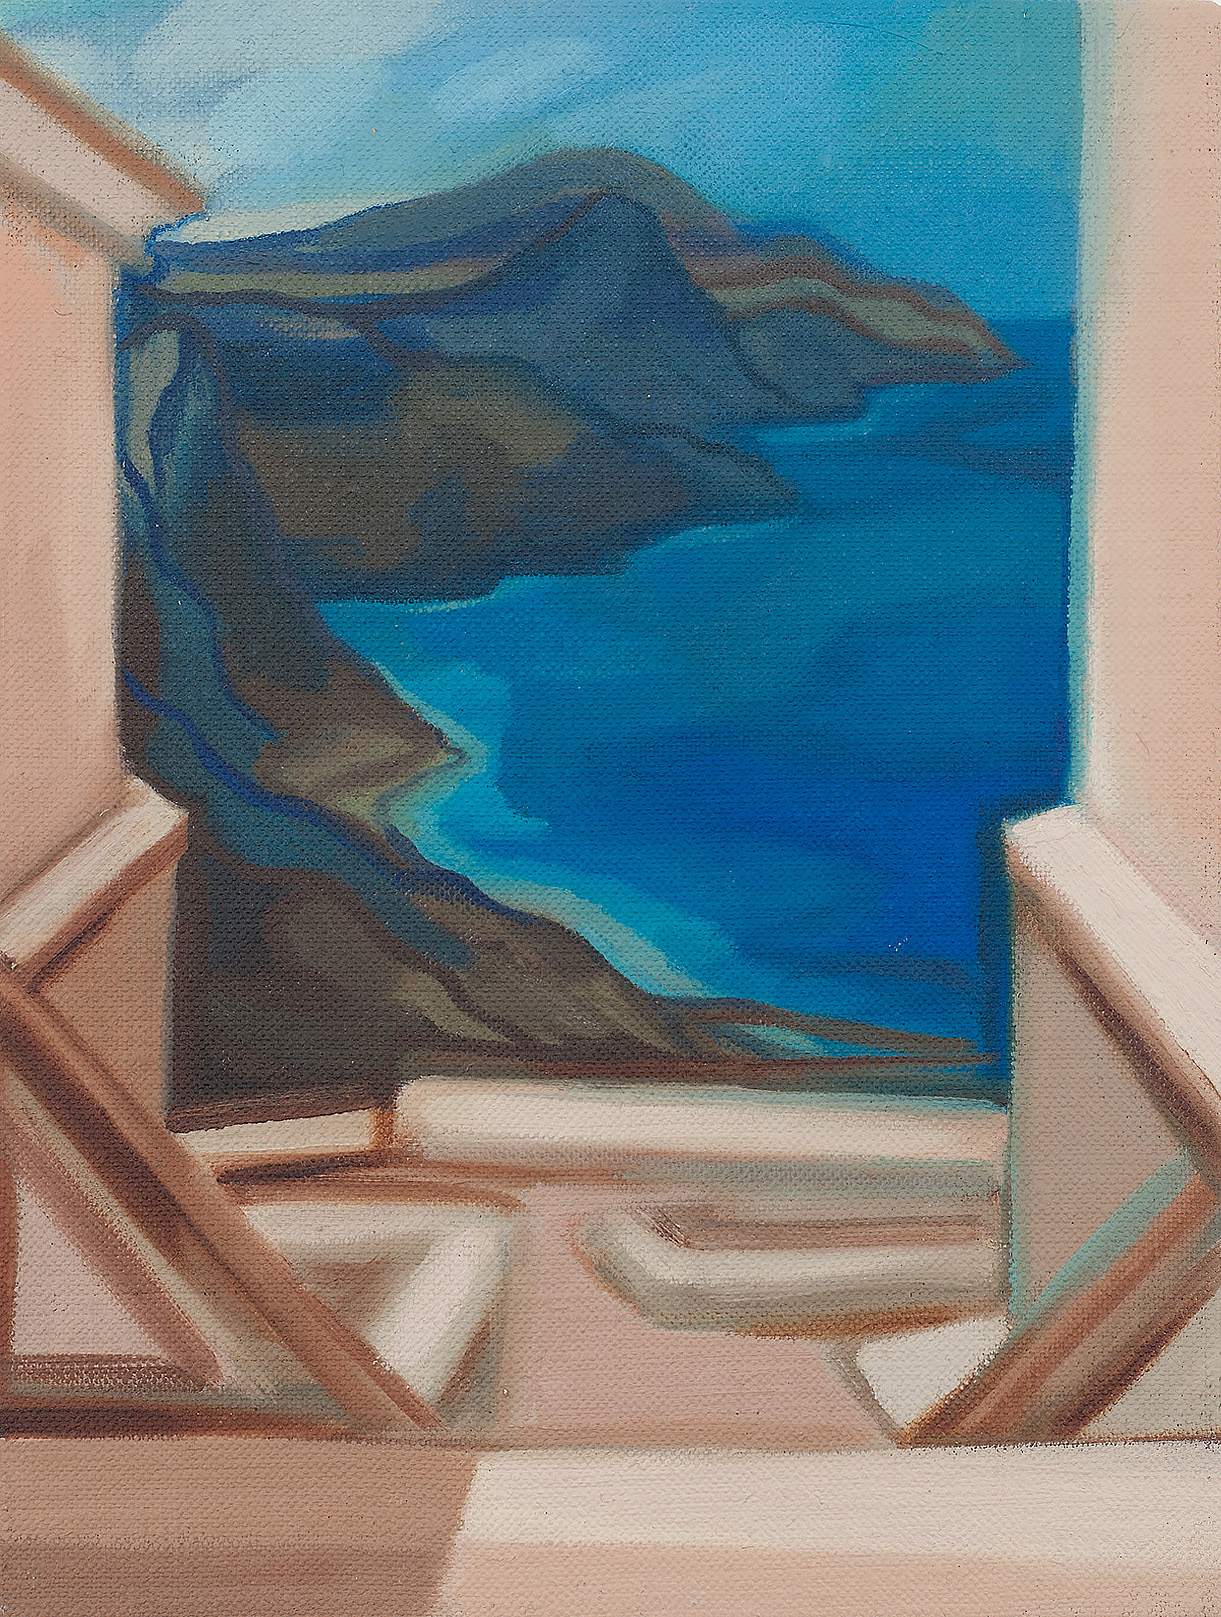 Private Island , Oil on linen board, 20 x 15 cm, 2016. Photograph courtesy of Taryn Ellis